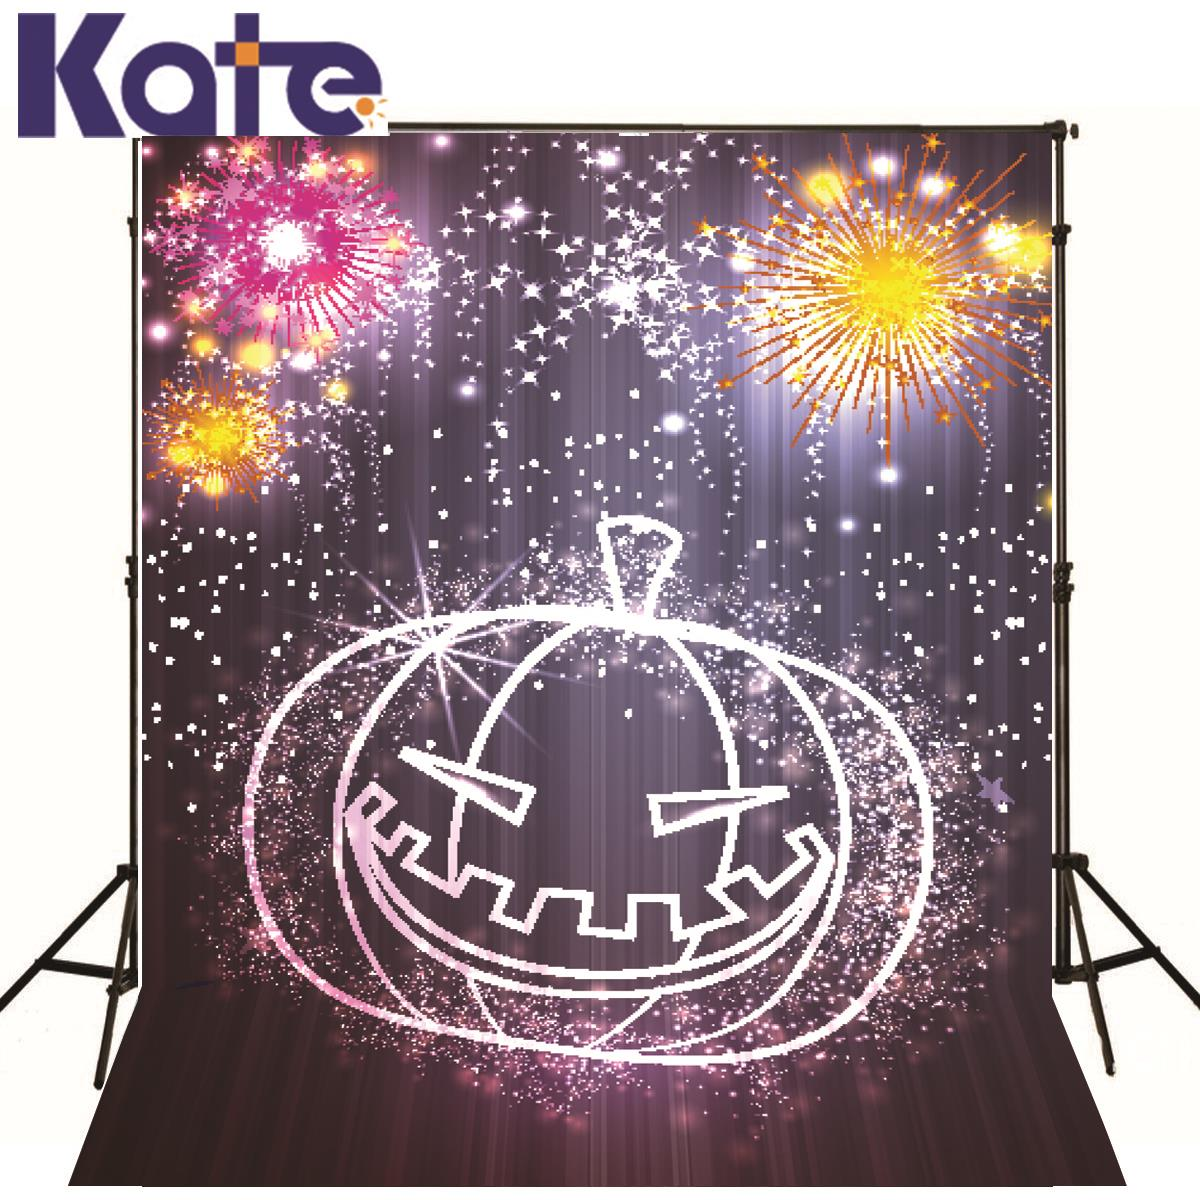 Festival Photo Background Fireworks Colors Backdrop Festival Lantern Pumpkins Dazzle Light Background For Photographer<br>